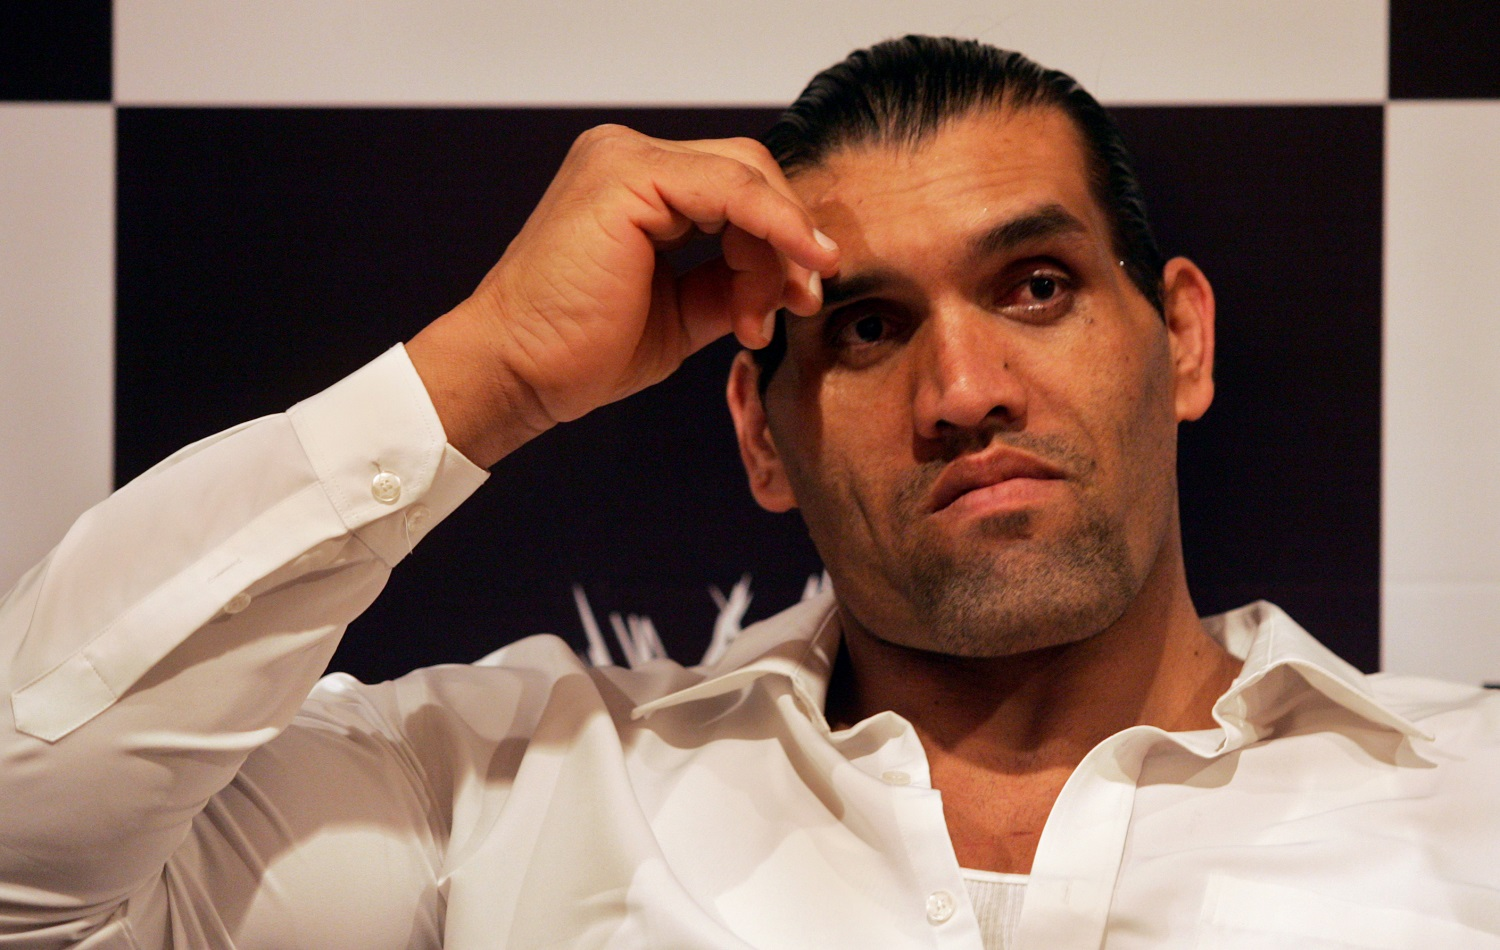 Former WWE Star The Great Khali Was Involved in a Botched Spot That Ultimately Killed a Man